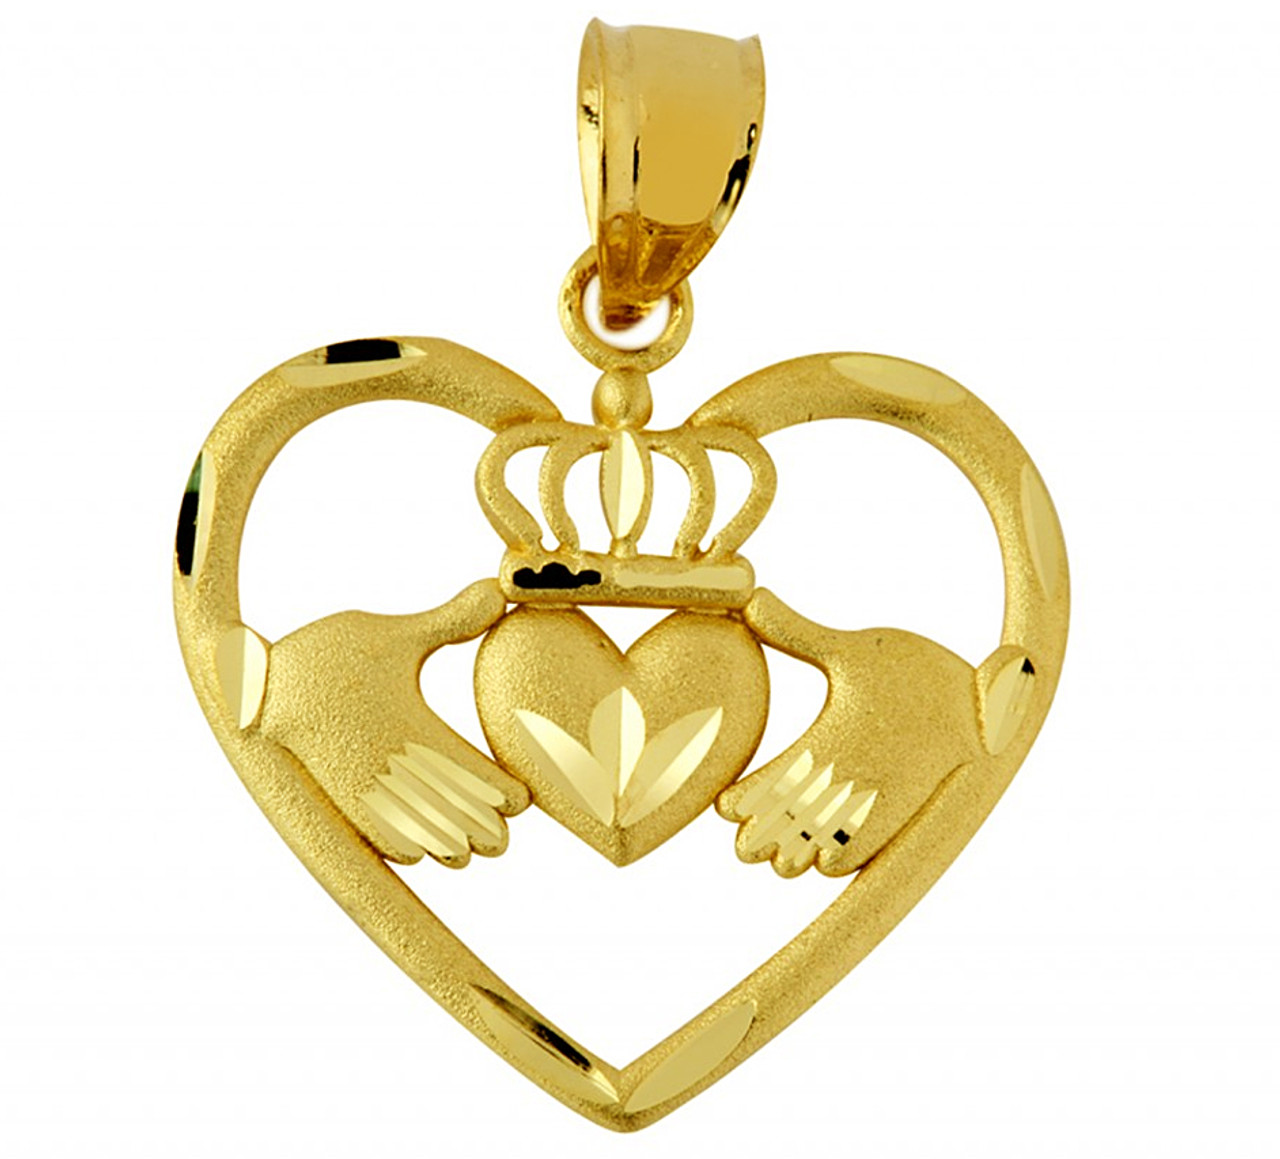 pendants pendant shad slide necklace claddagh infinity jewelry slid